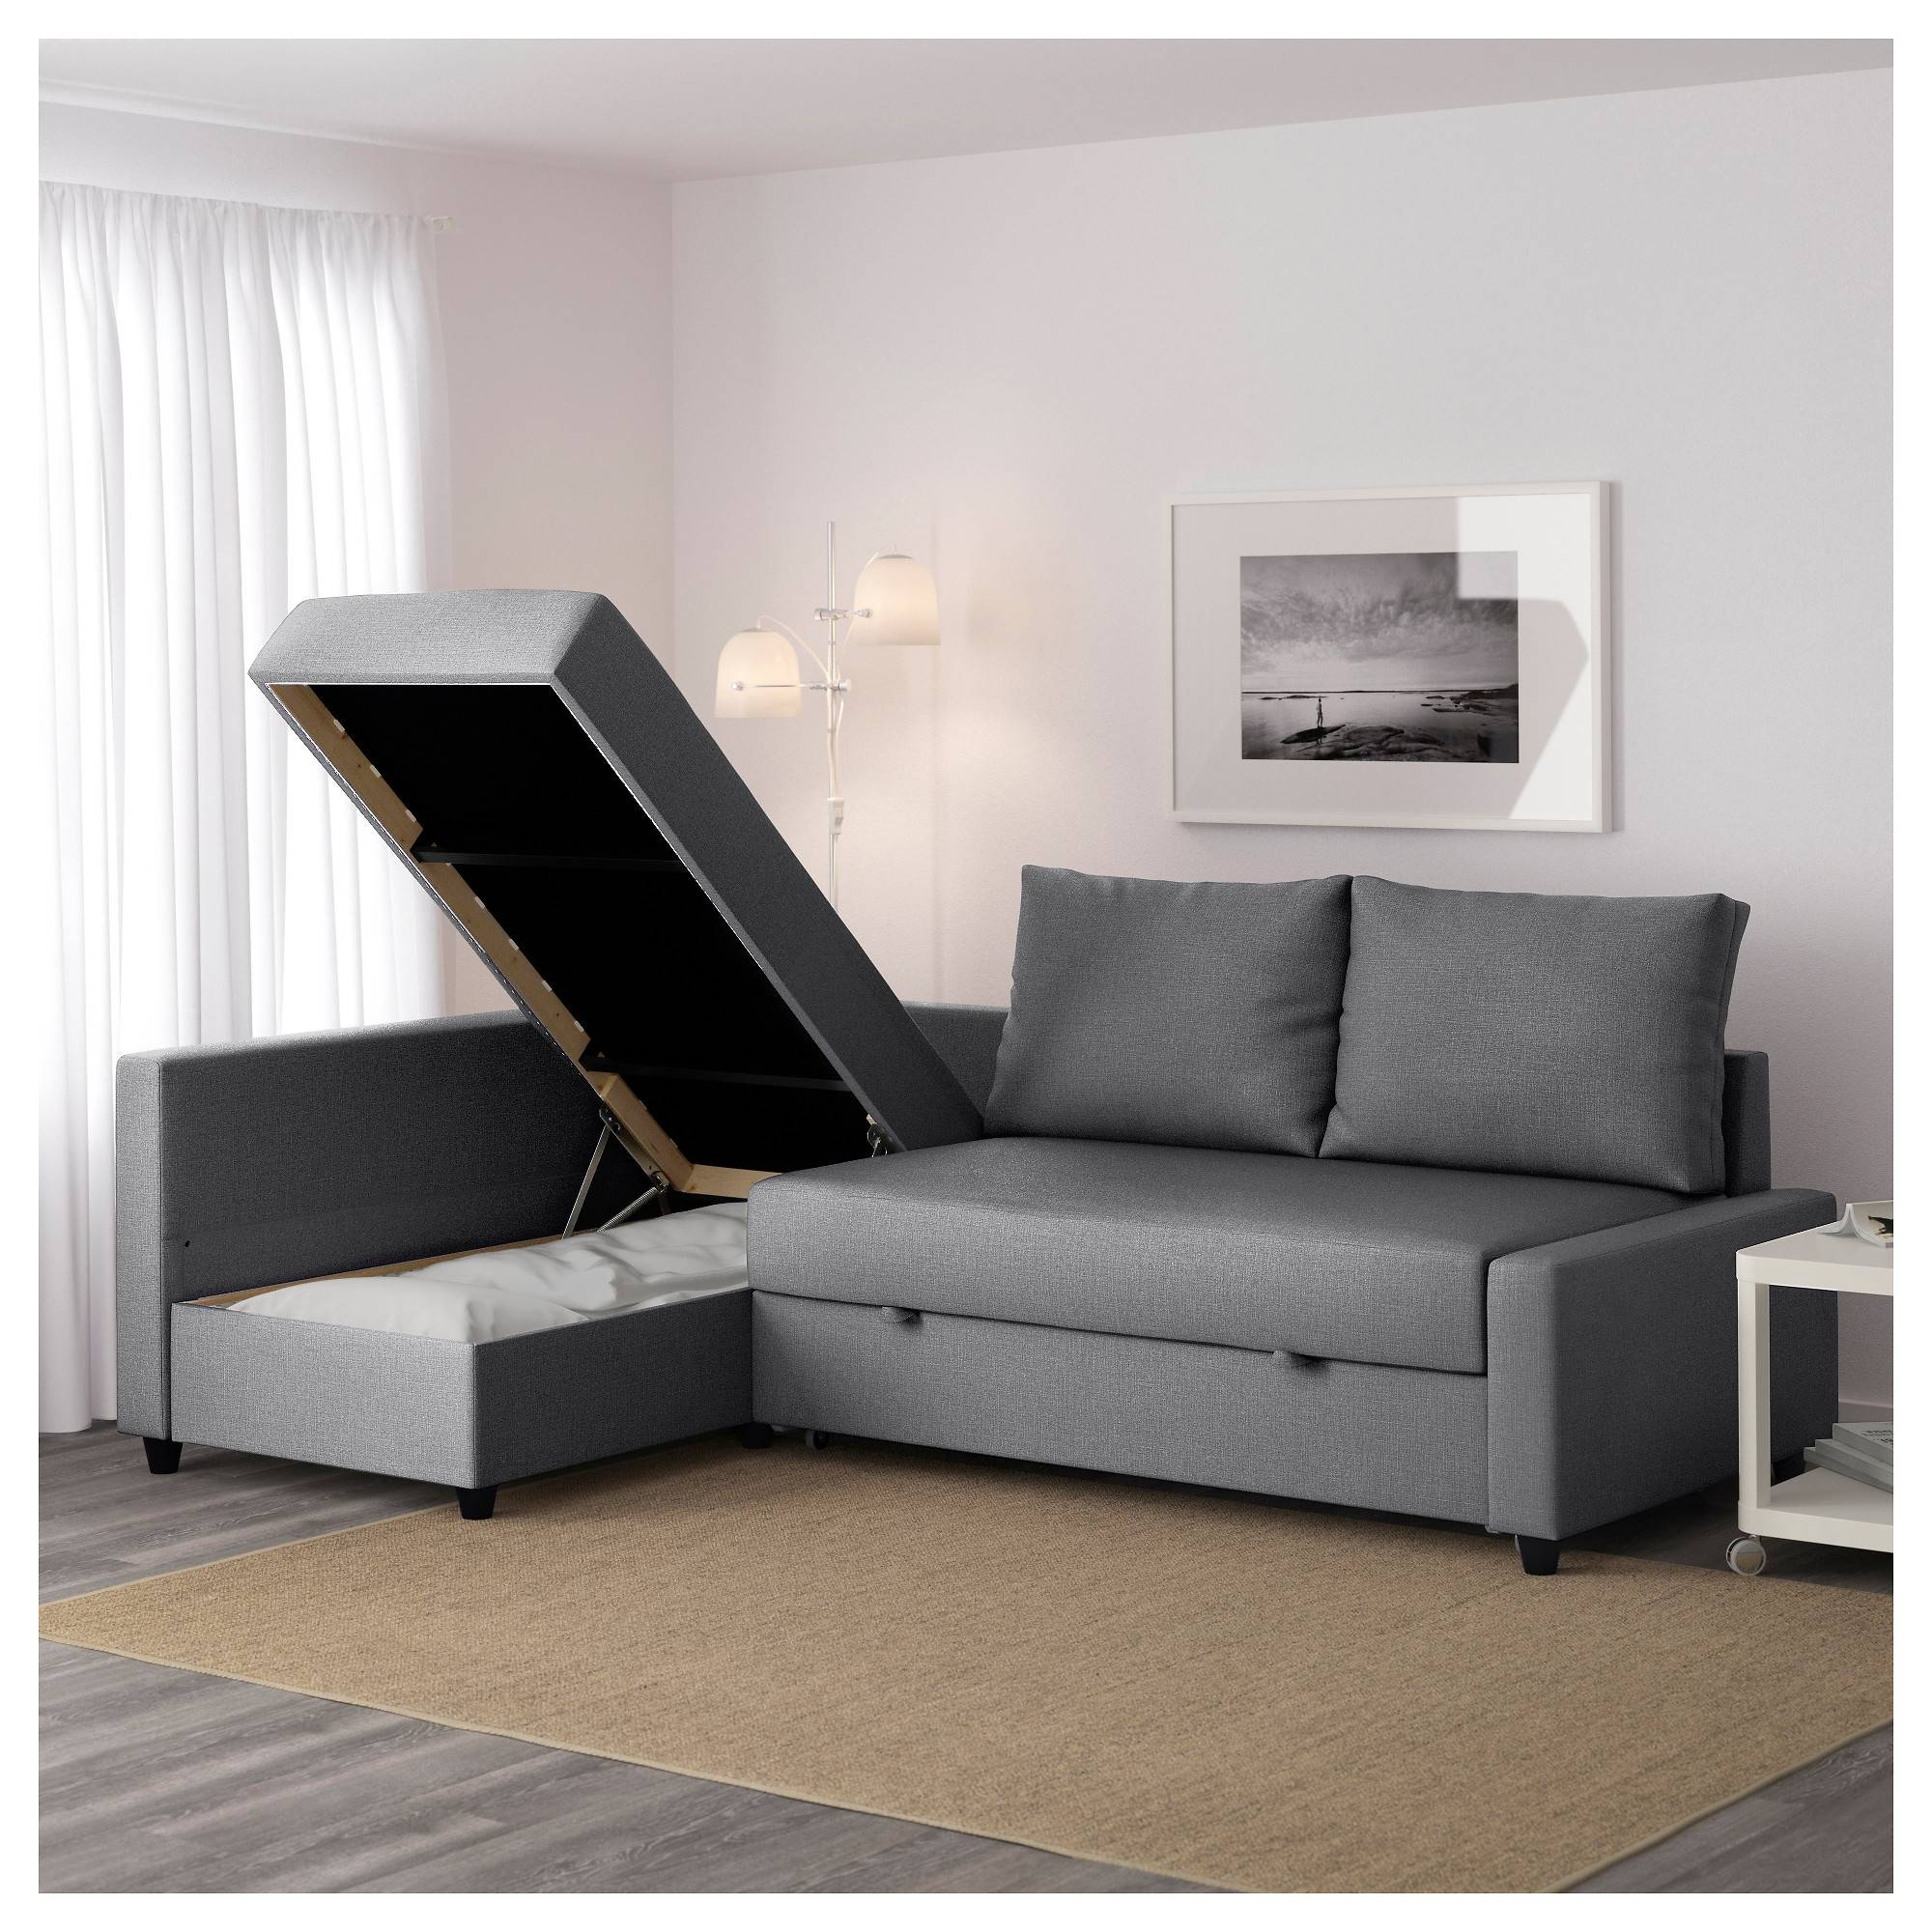 Friheten Corner Sofa-Bed With Storage Skiftebo Dark Grey - Ikea regarding Ikea Sofa Storage (Image 5 of 25)